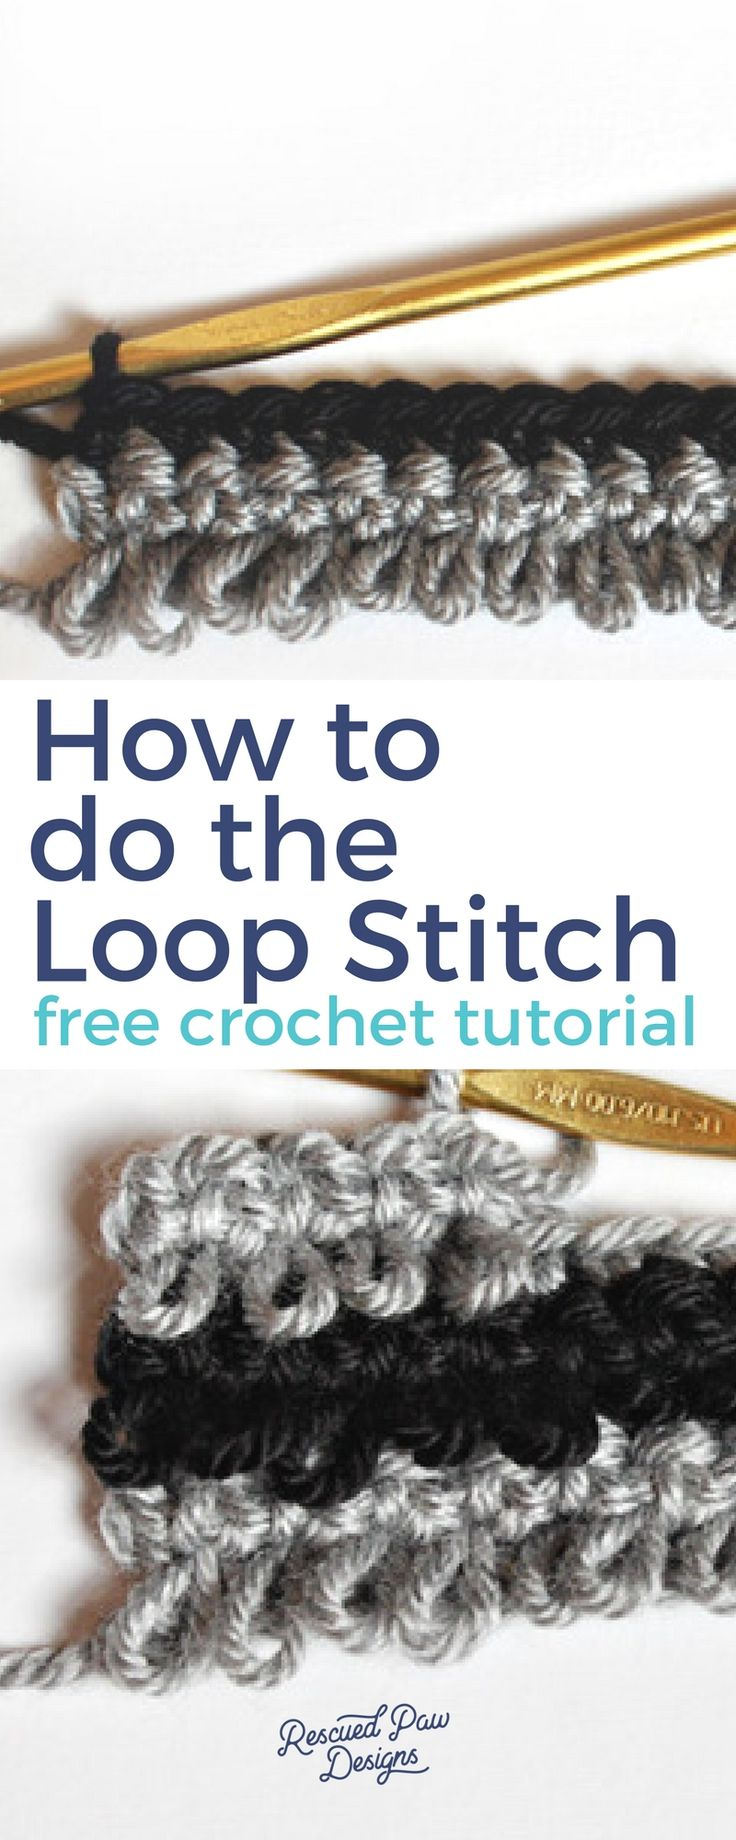 Learn How to do the Loop Stitch in Crochet!